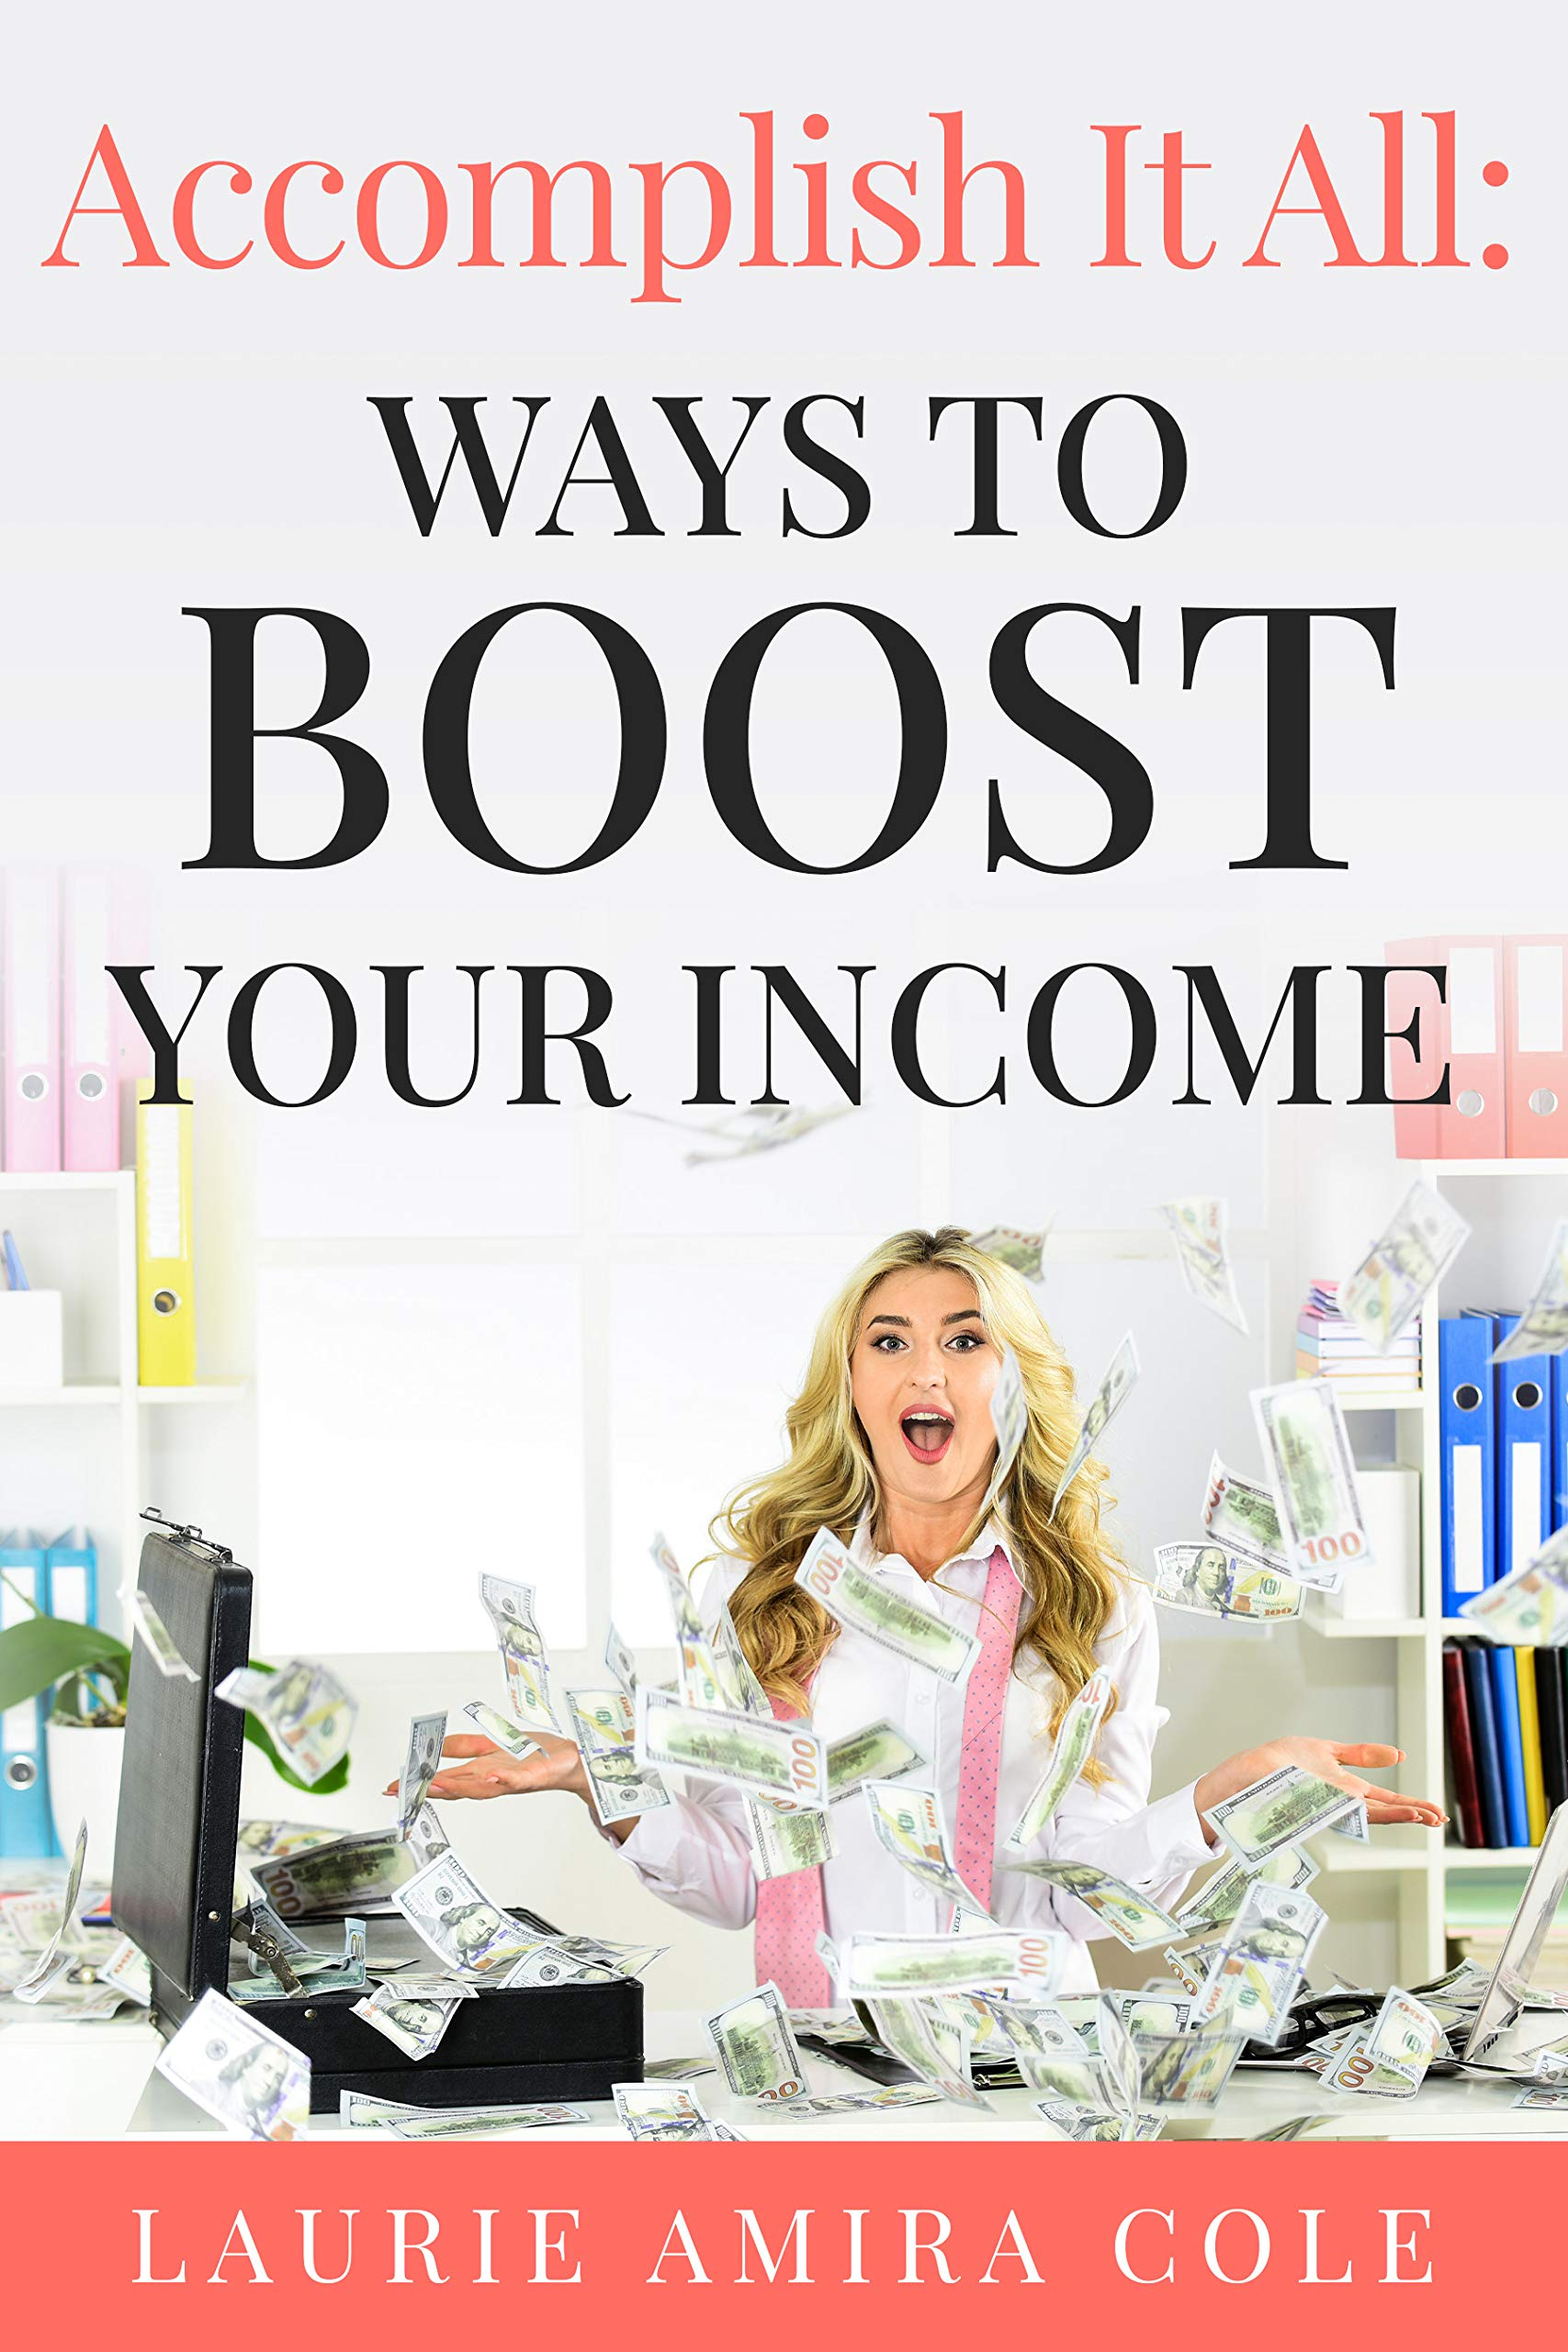 Accomplish It All: Ways to Boost Your Income